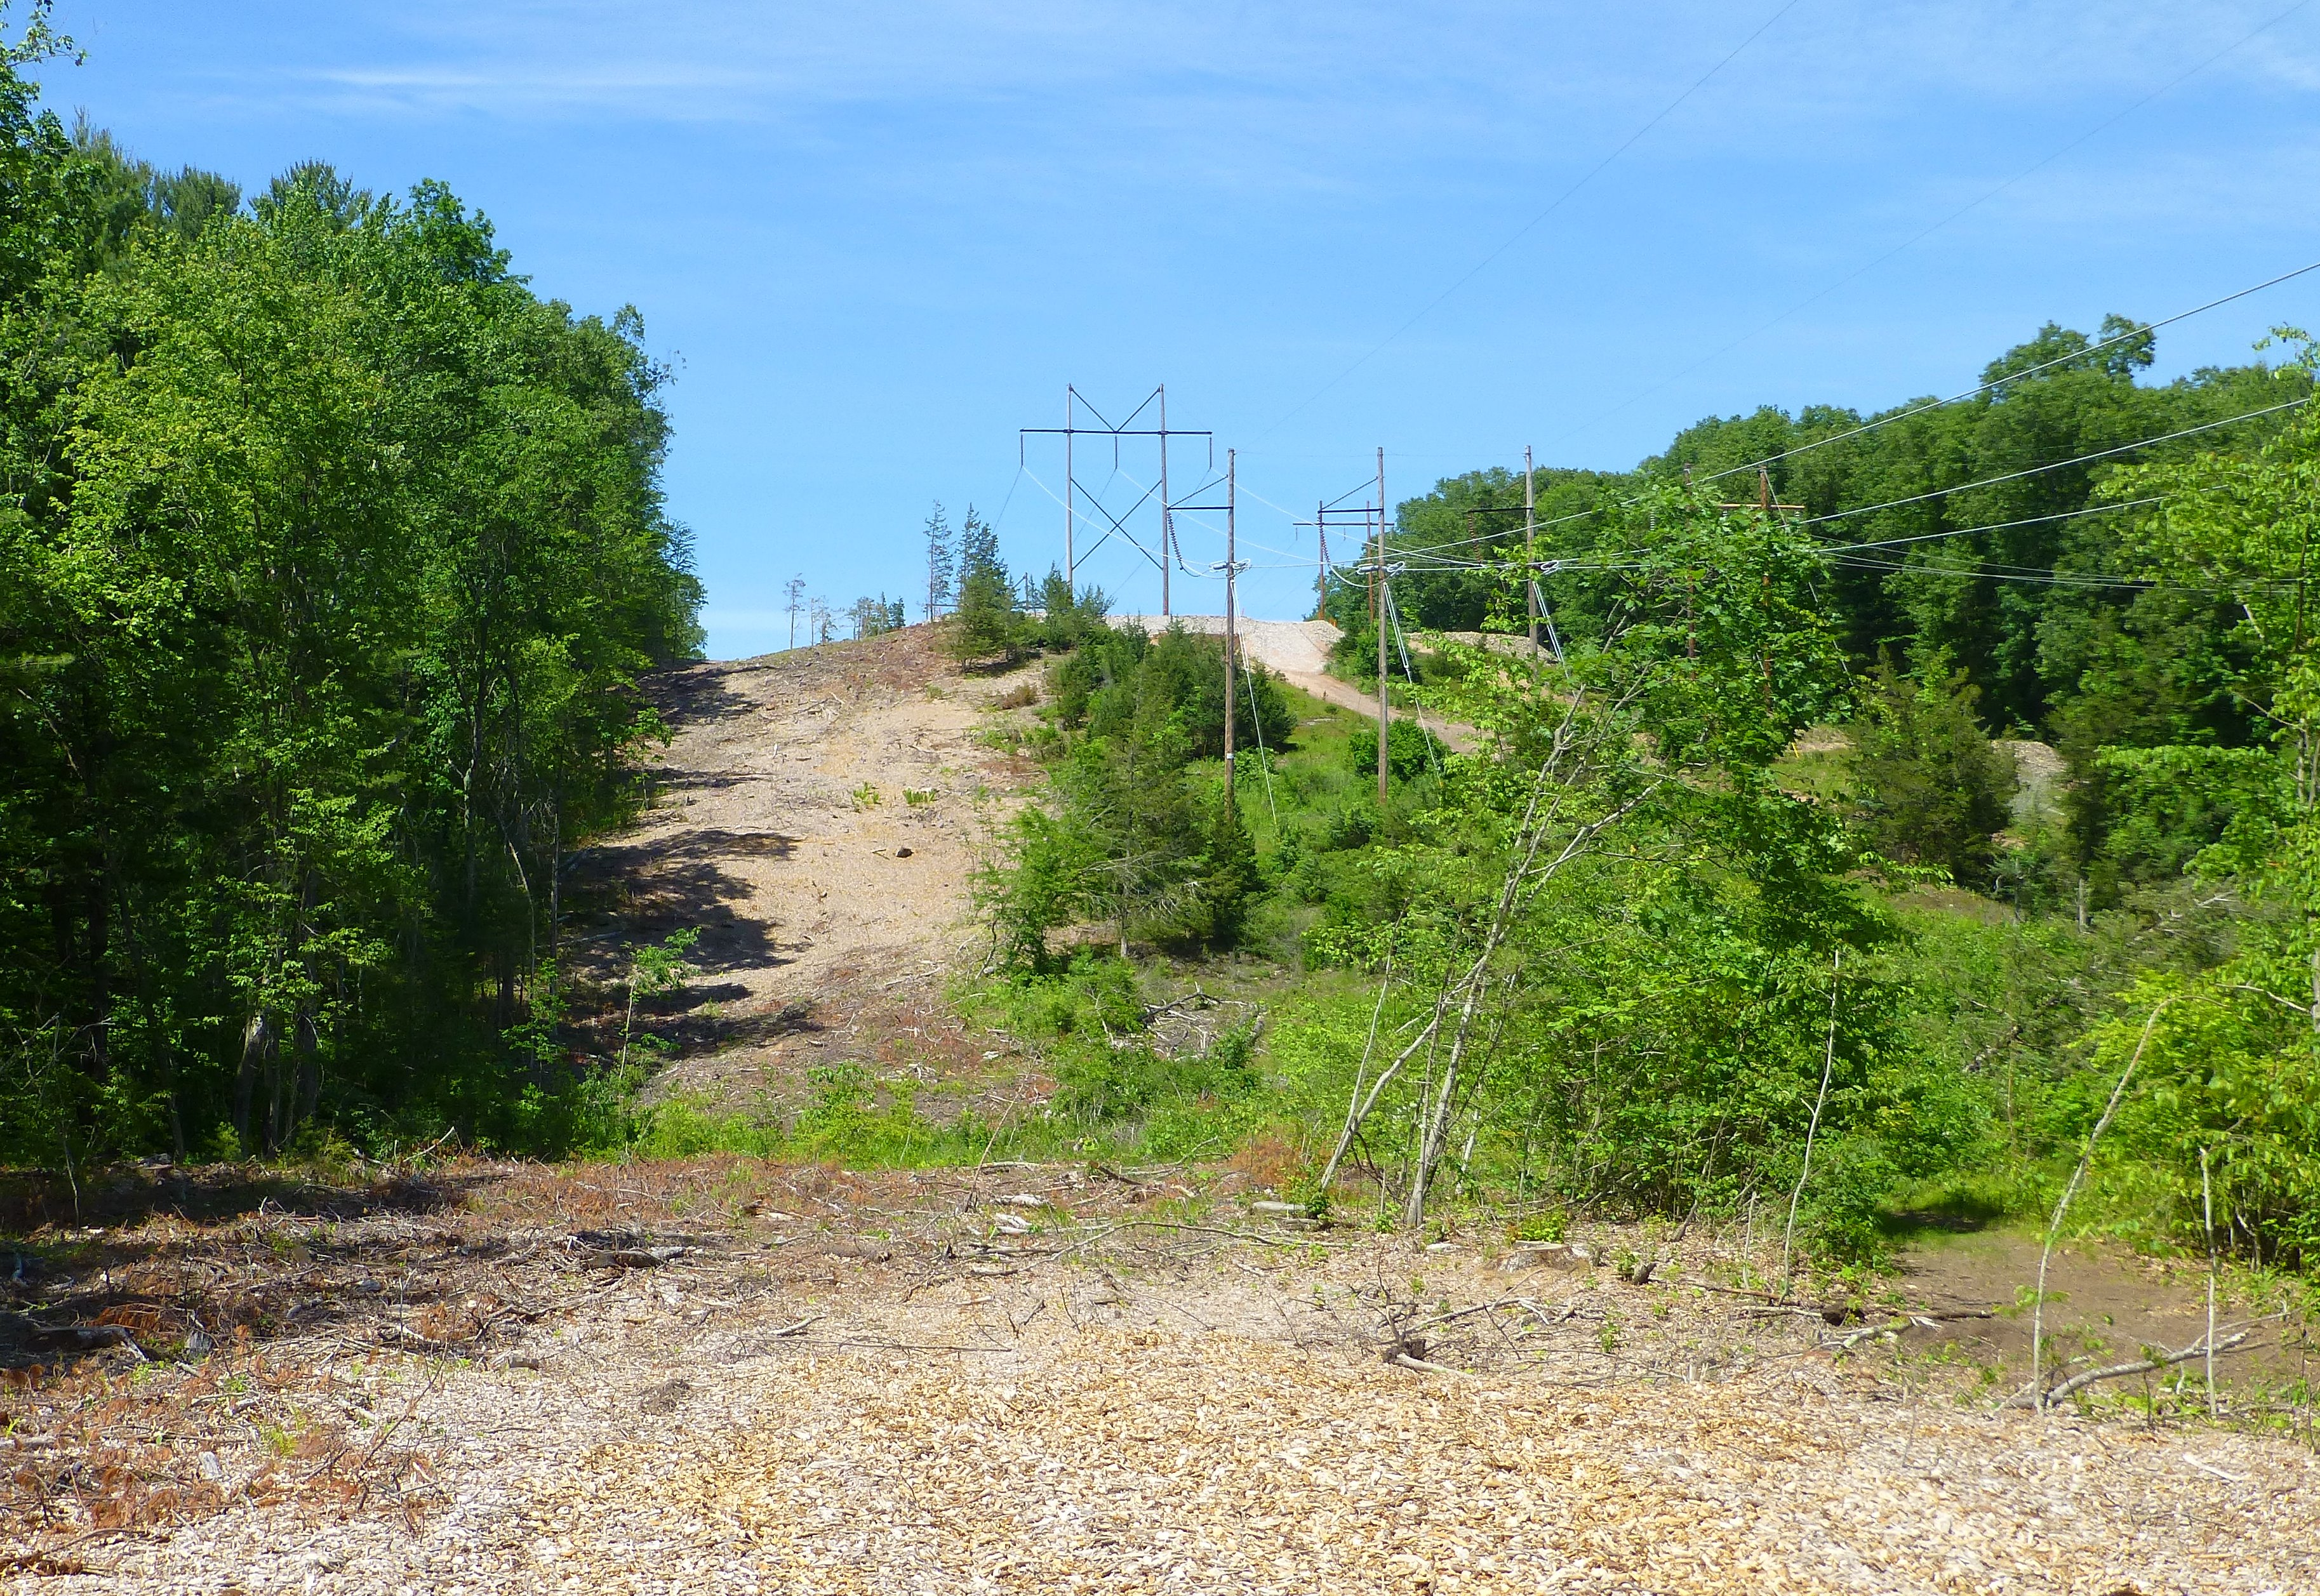 power line after tree cutting 2017